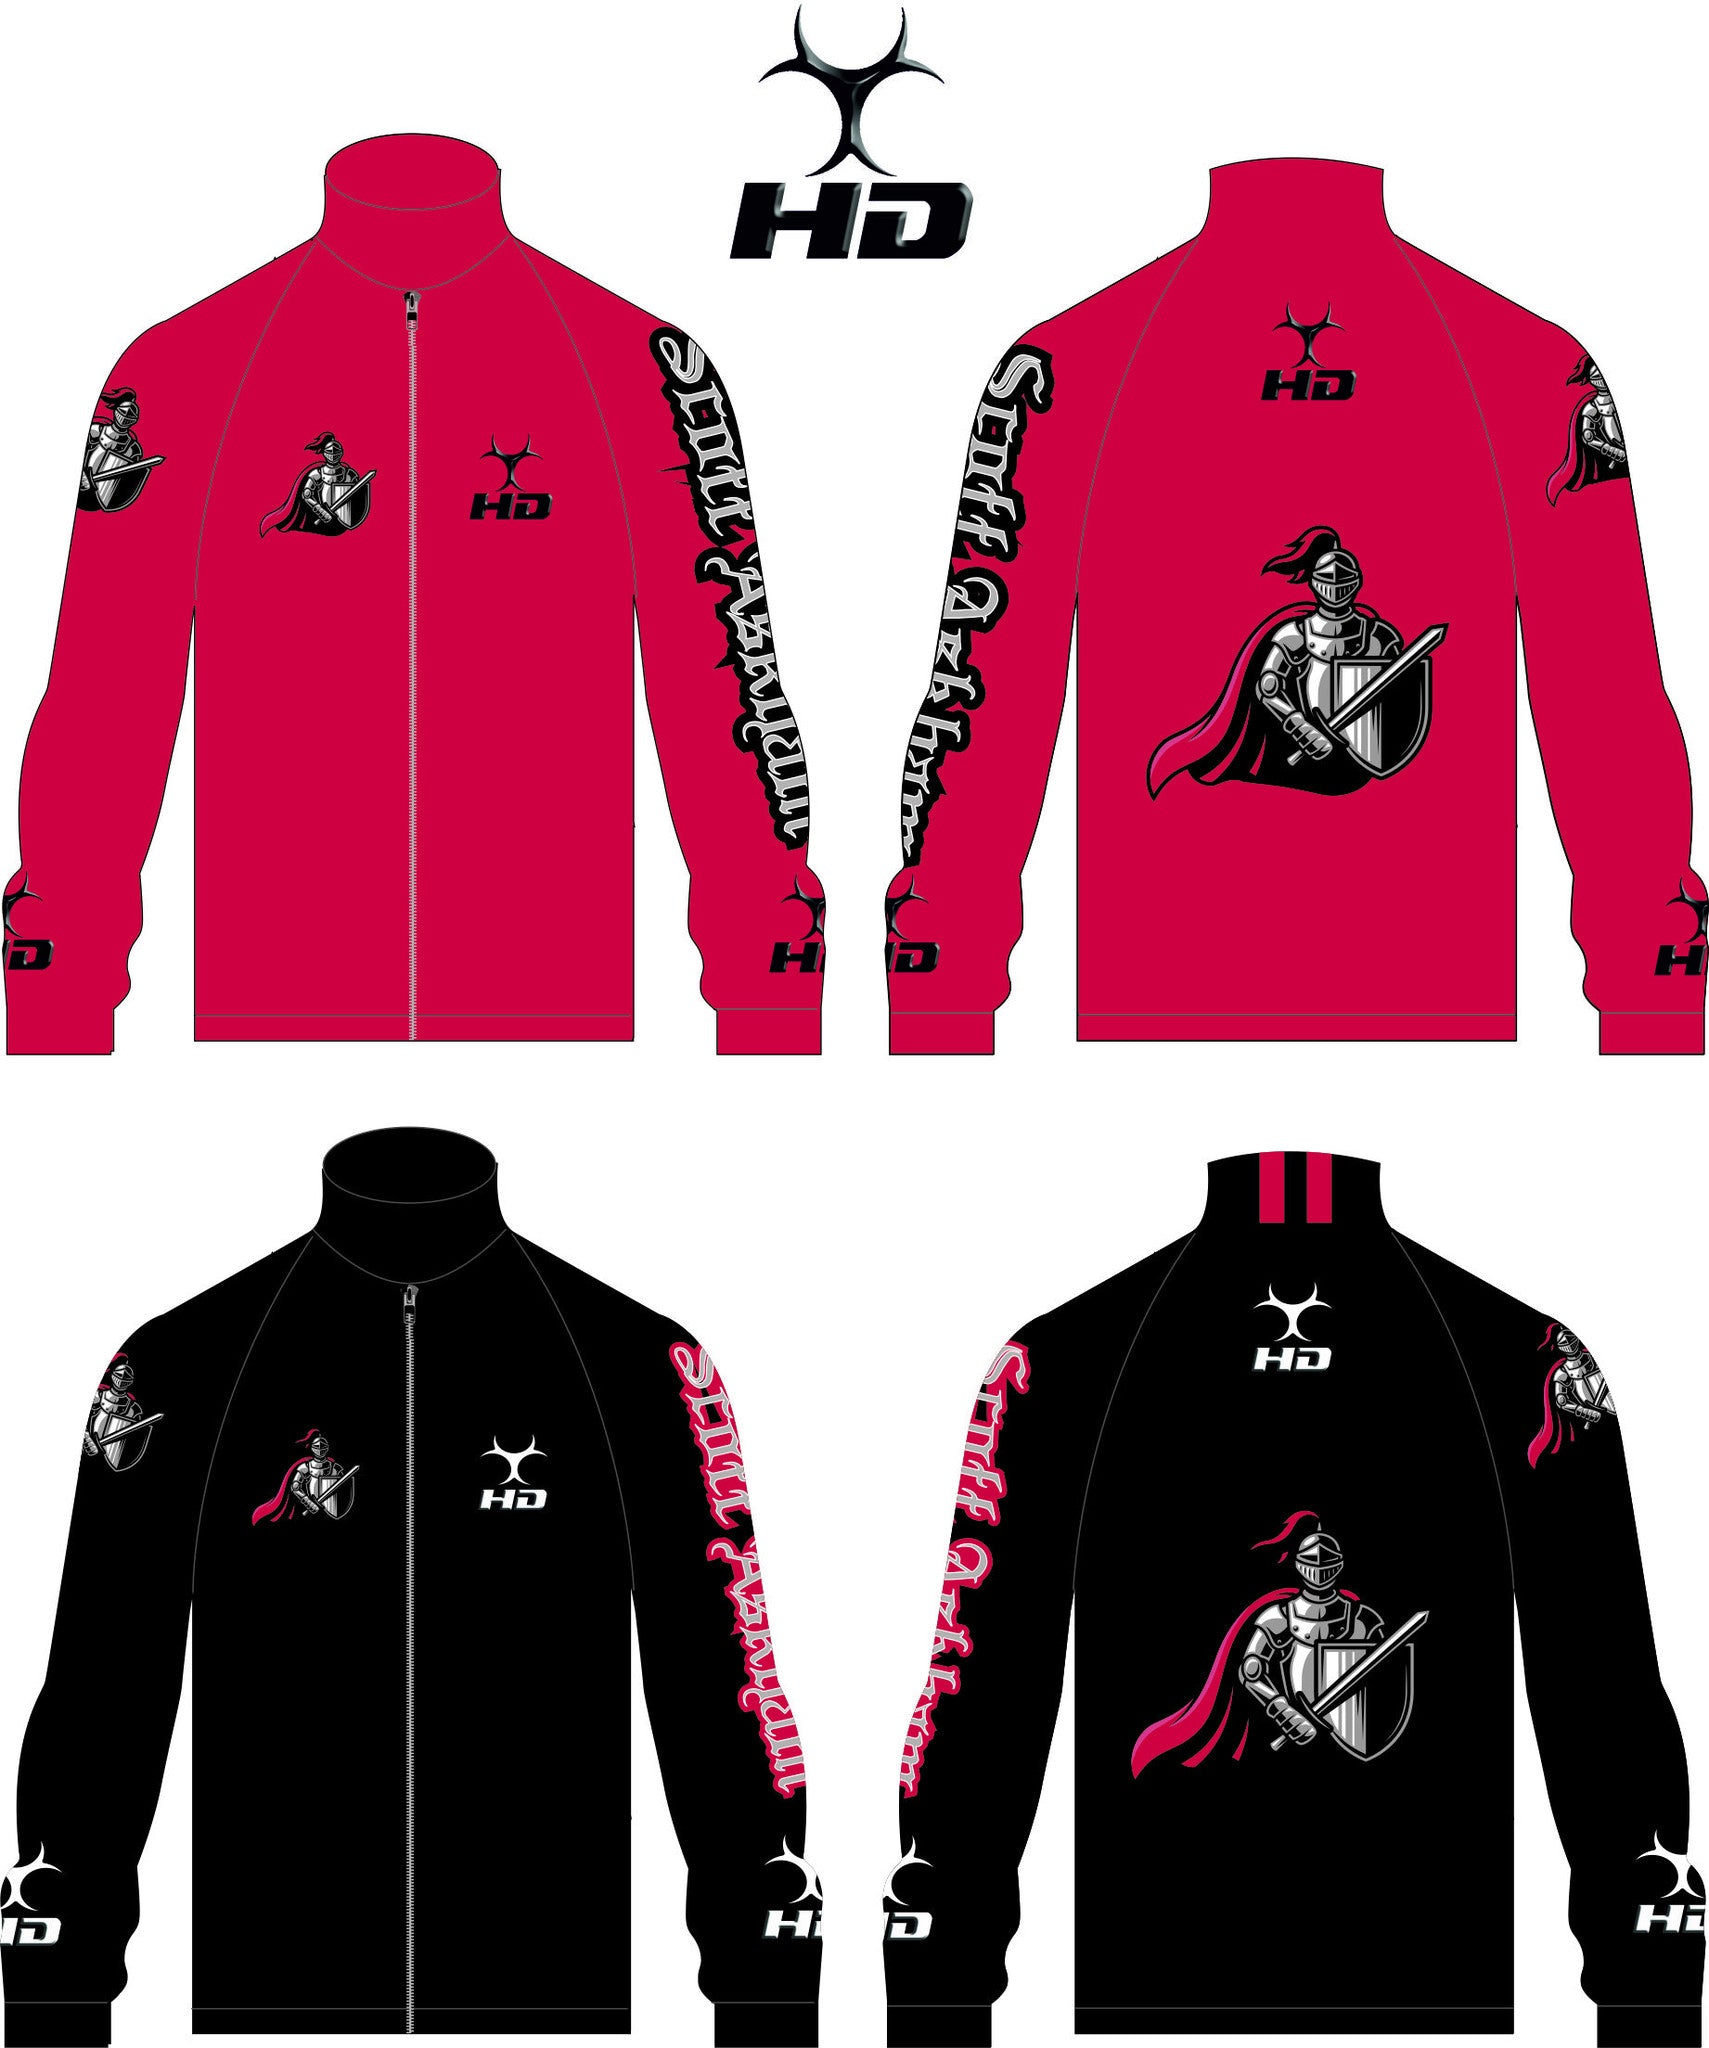 HD Launch Official Scott Askham Limited Edition Tracksuit Top Only £49.99